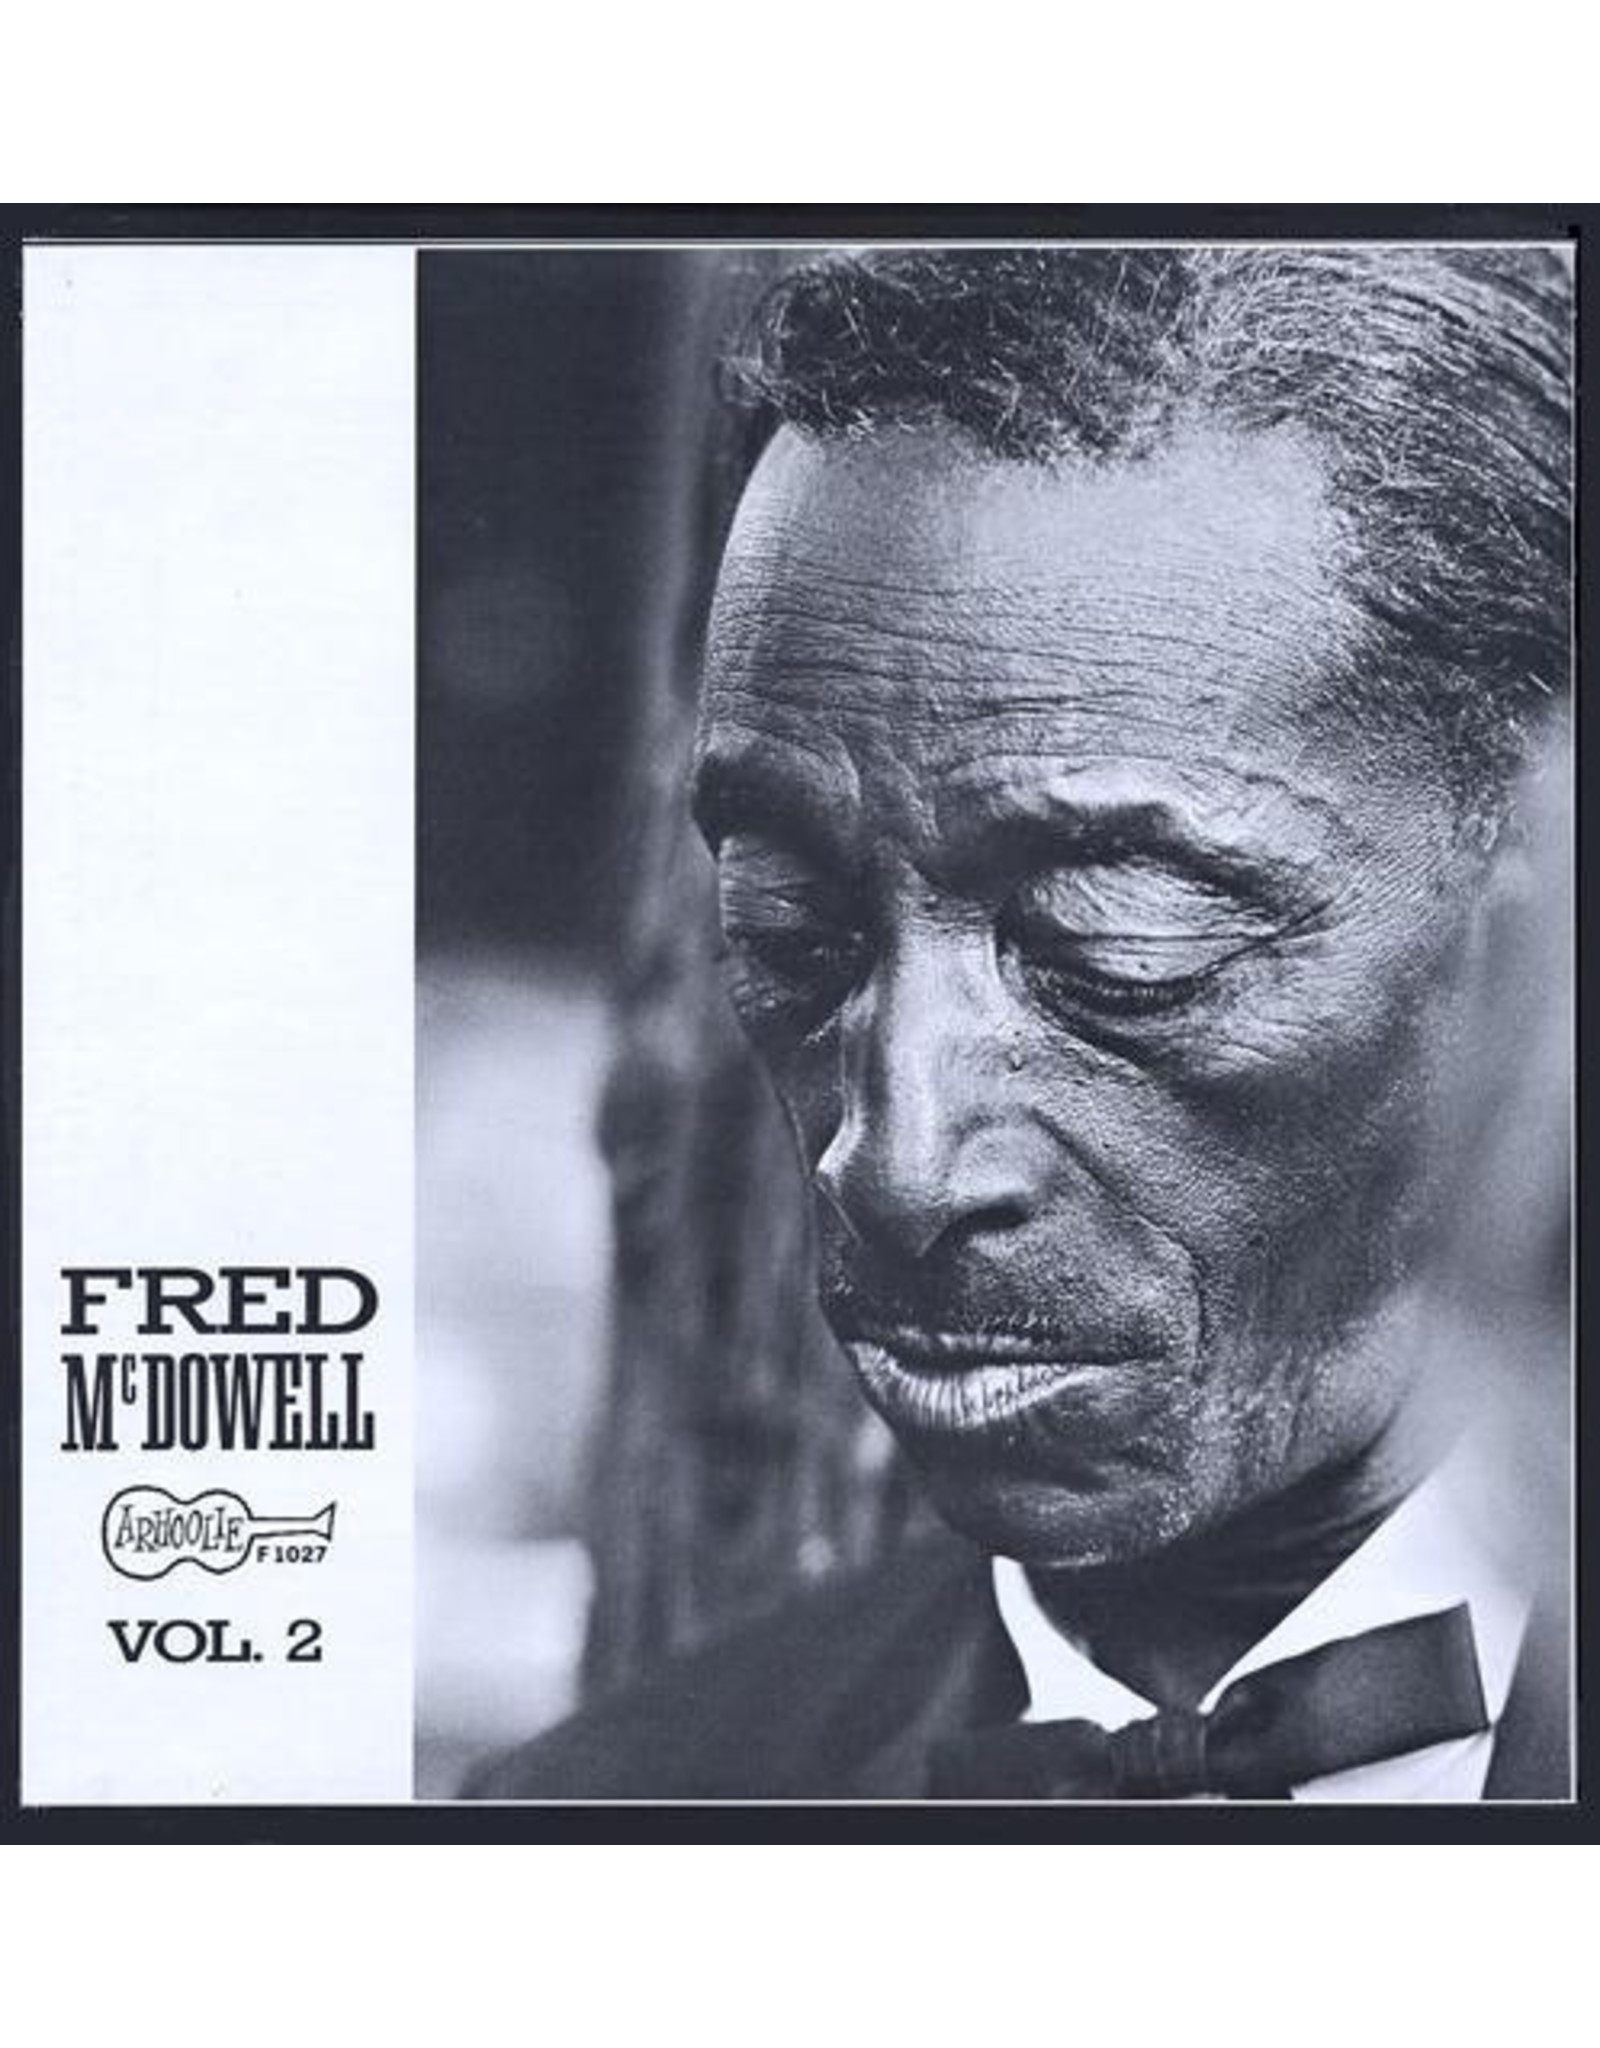 New Vinyl Fred McDowell - Vol. 2 LP